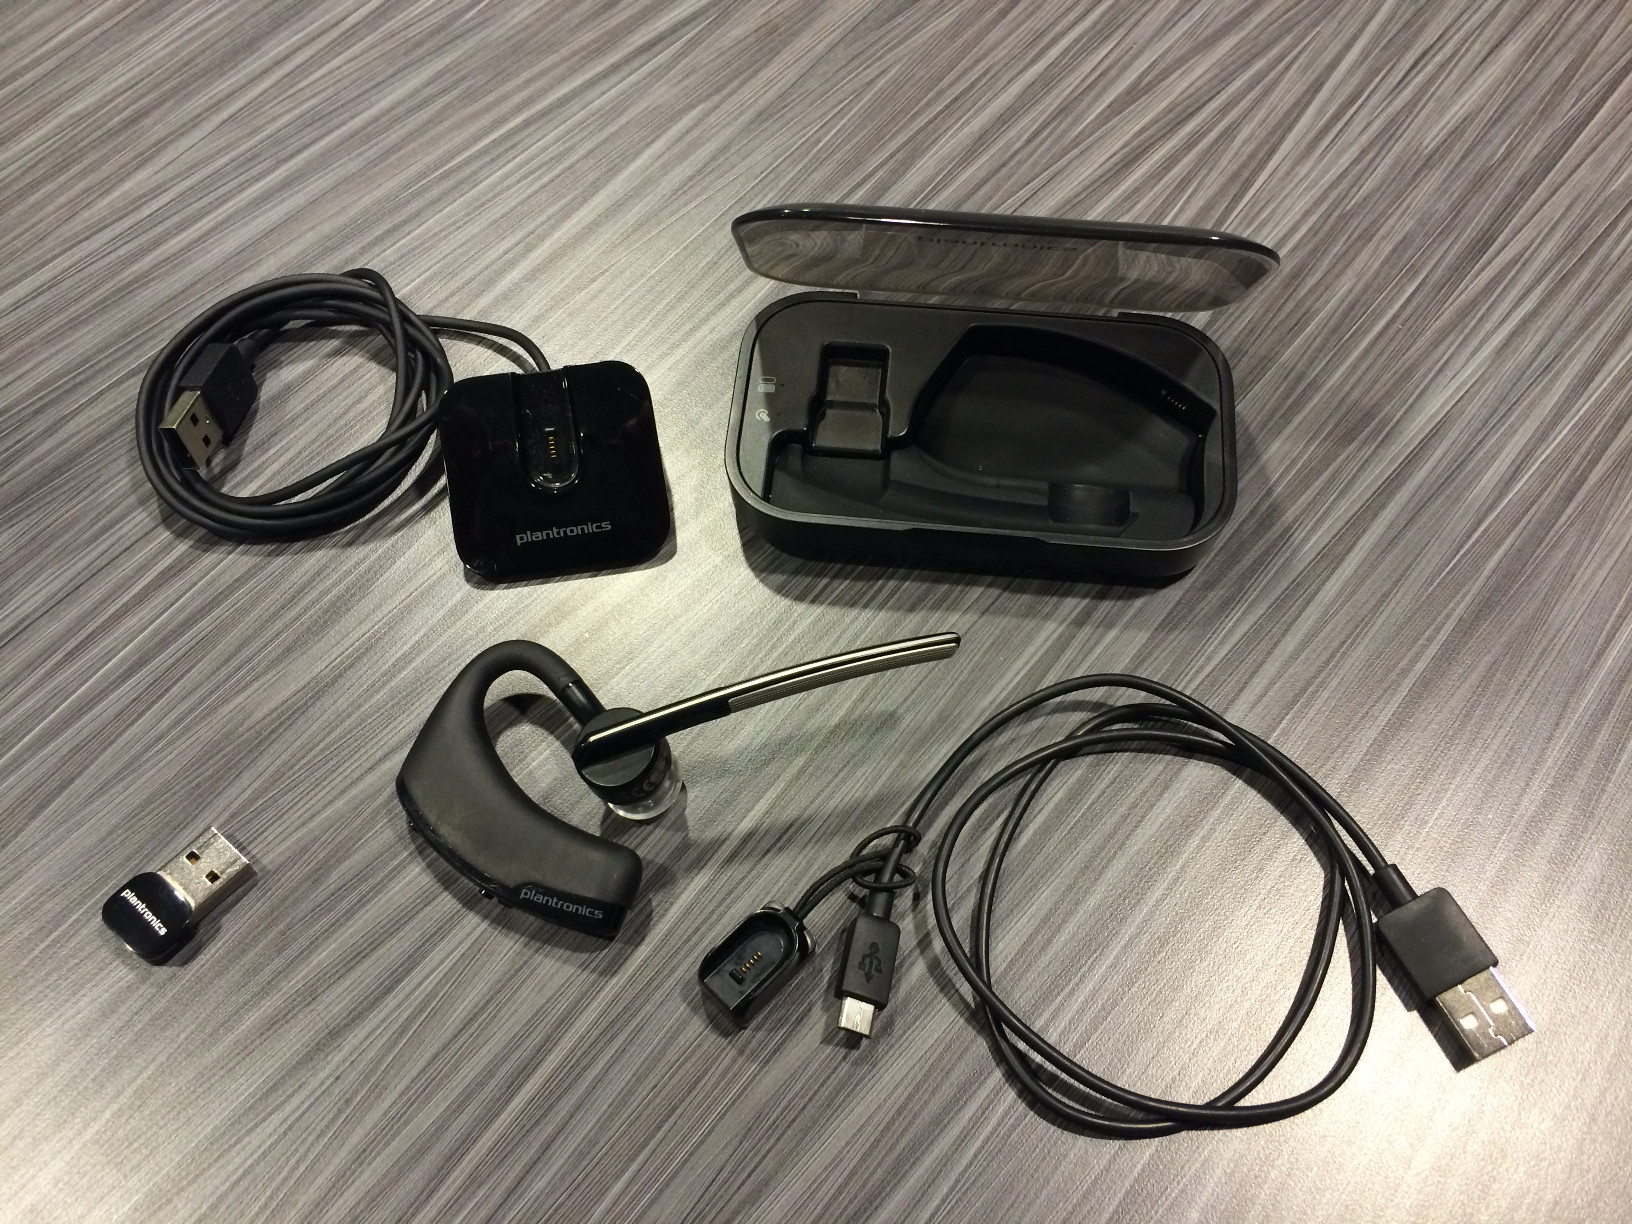 Review Plantronics Voyager Legend Uc Gonzalo Escarra S Blog